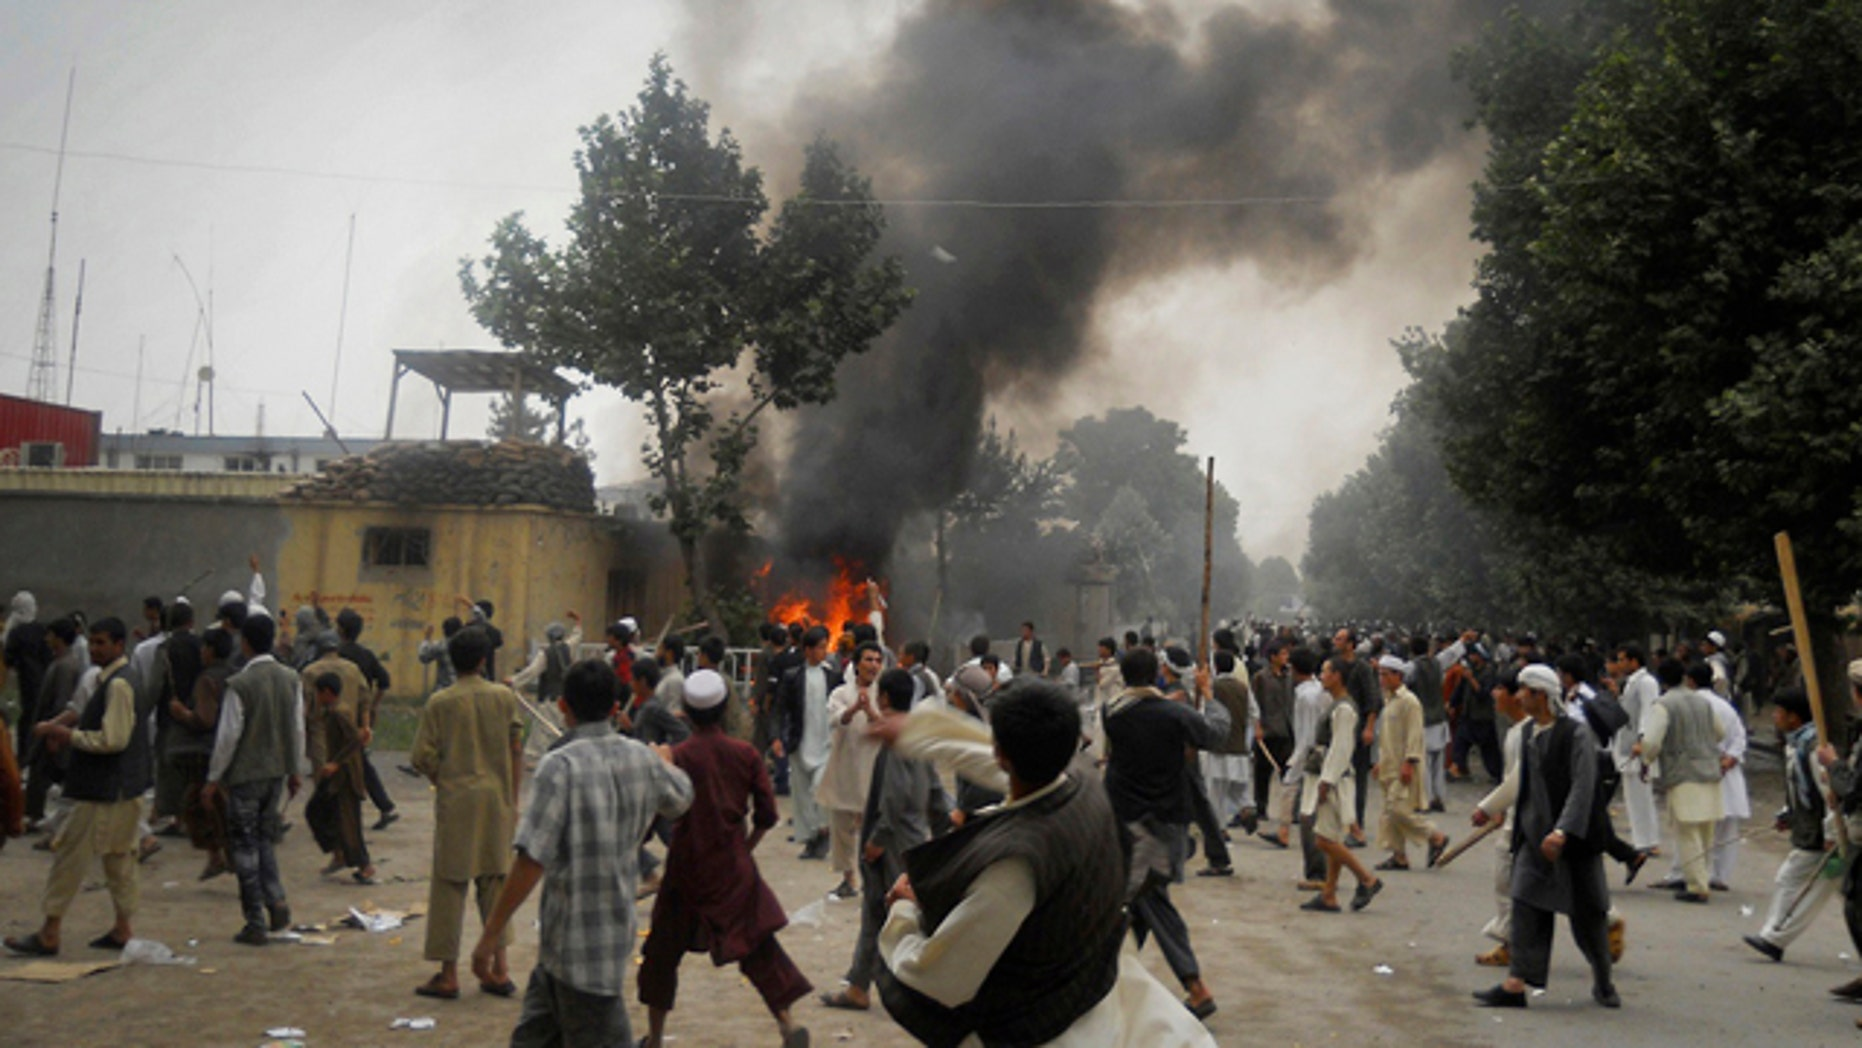 May 19: Smoke rises after protesters set alight police motorcycles at a police headquarter compound during a demonstration in Taloqan, Takhar province, north of Kabul, Afghanistan.